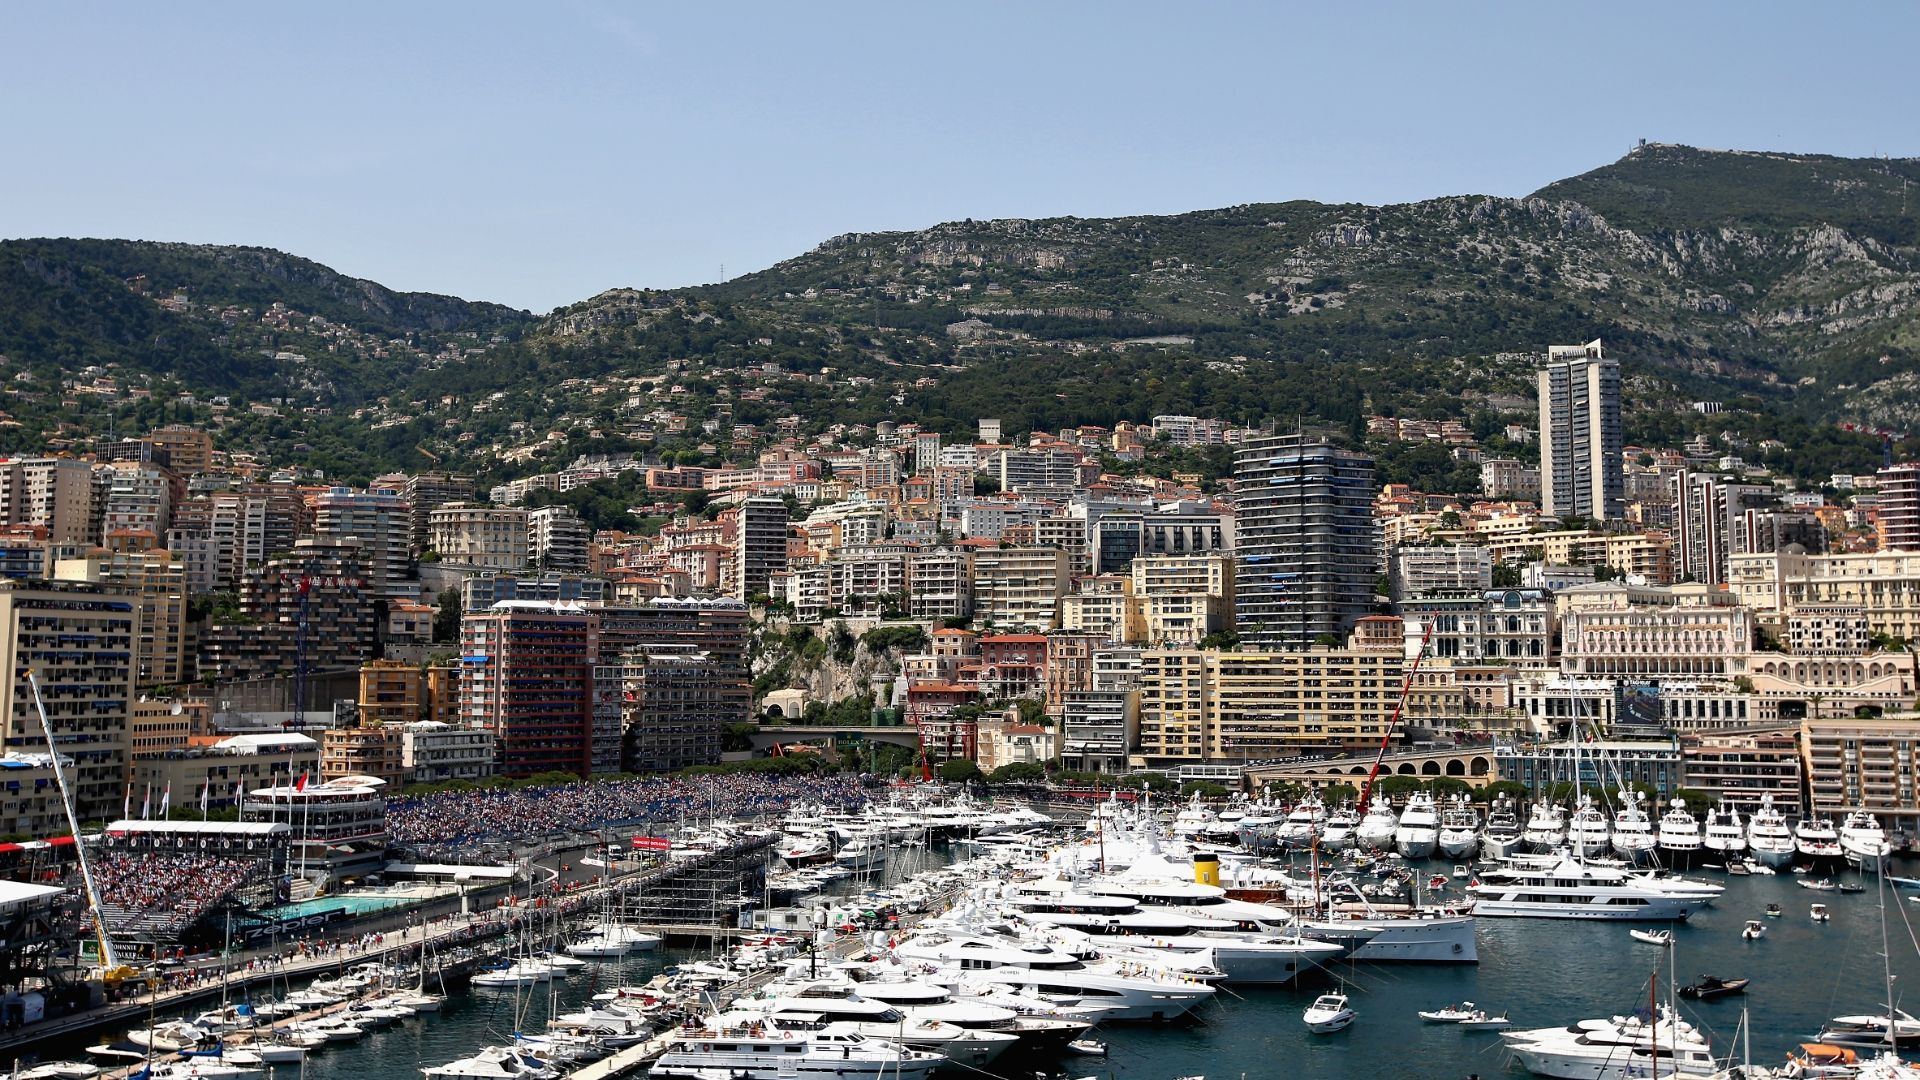 Should Monaco change their track layout?